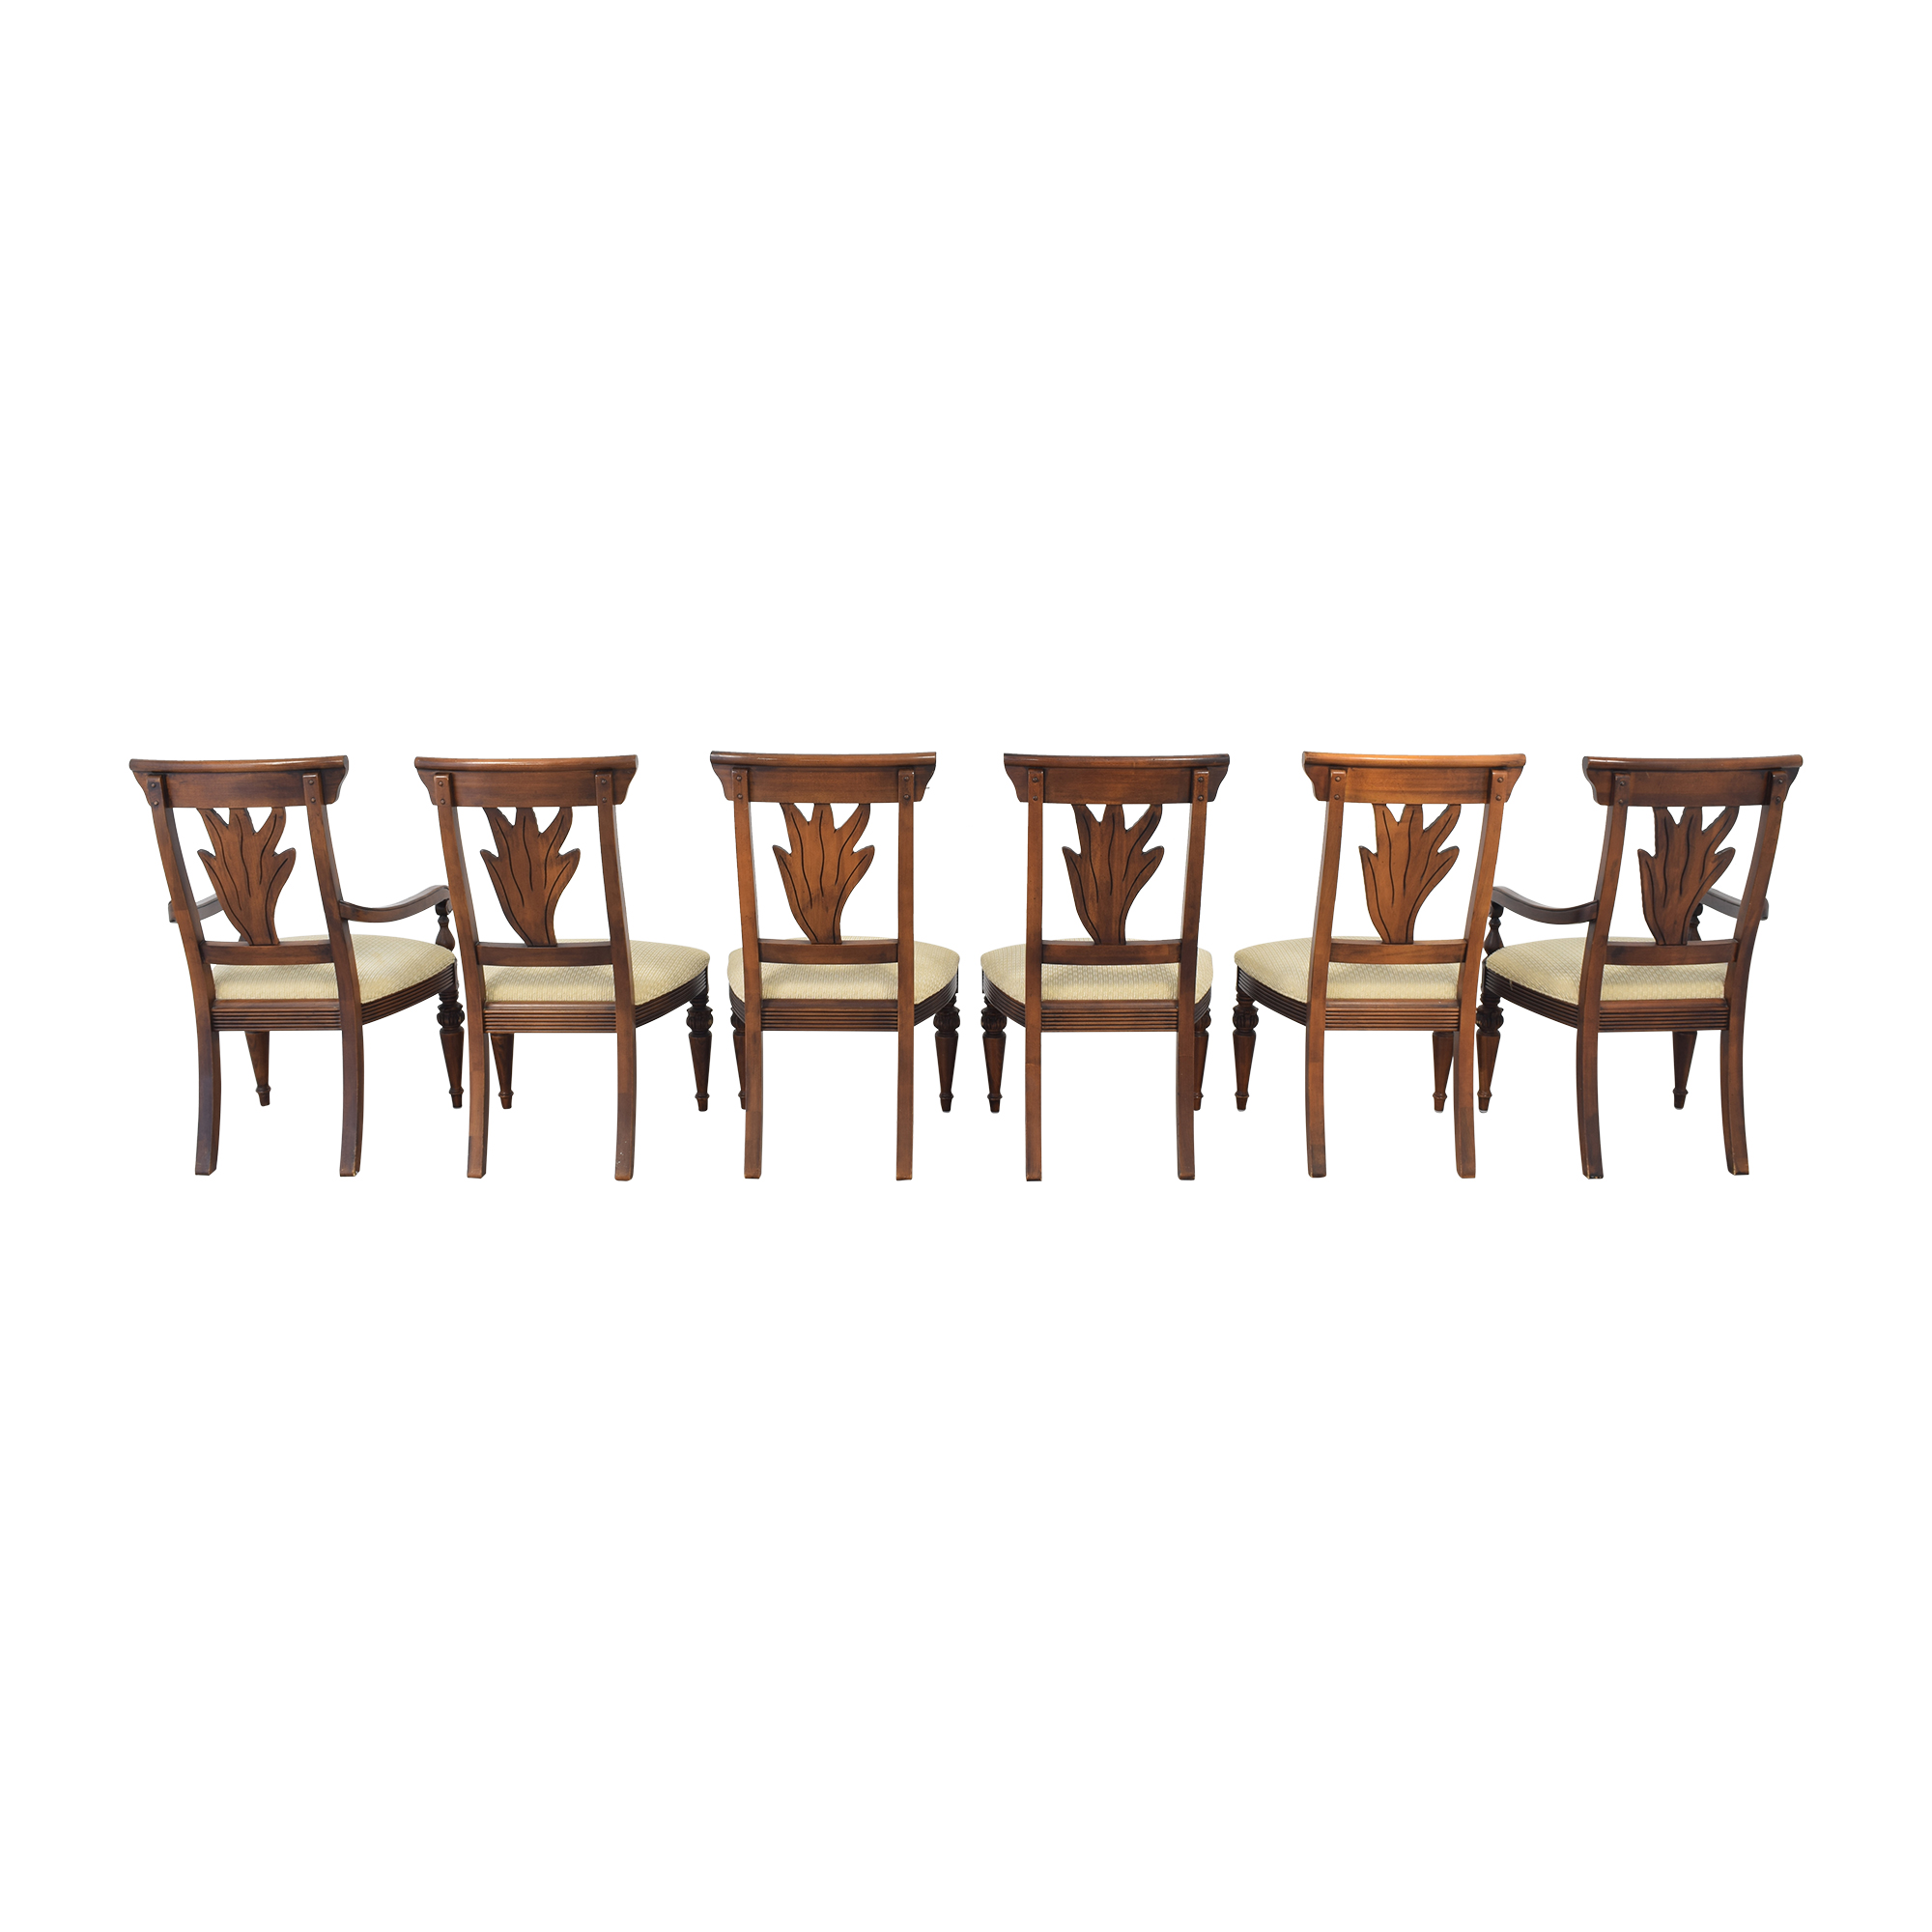 Thomasville Thomasville Ernest Hemingway Collection Dining Chairs price